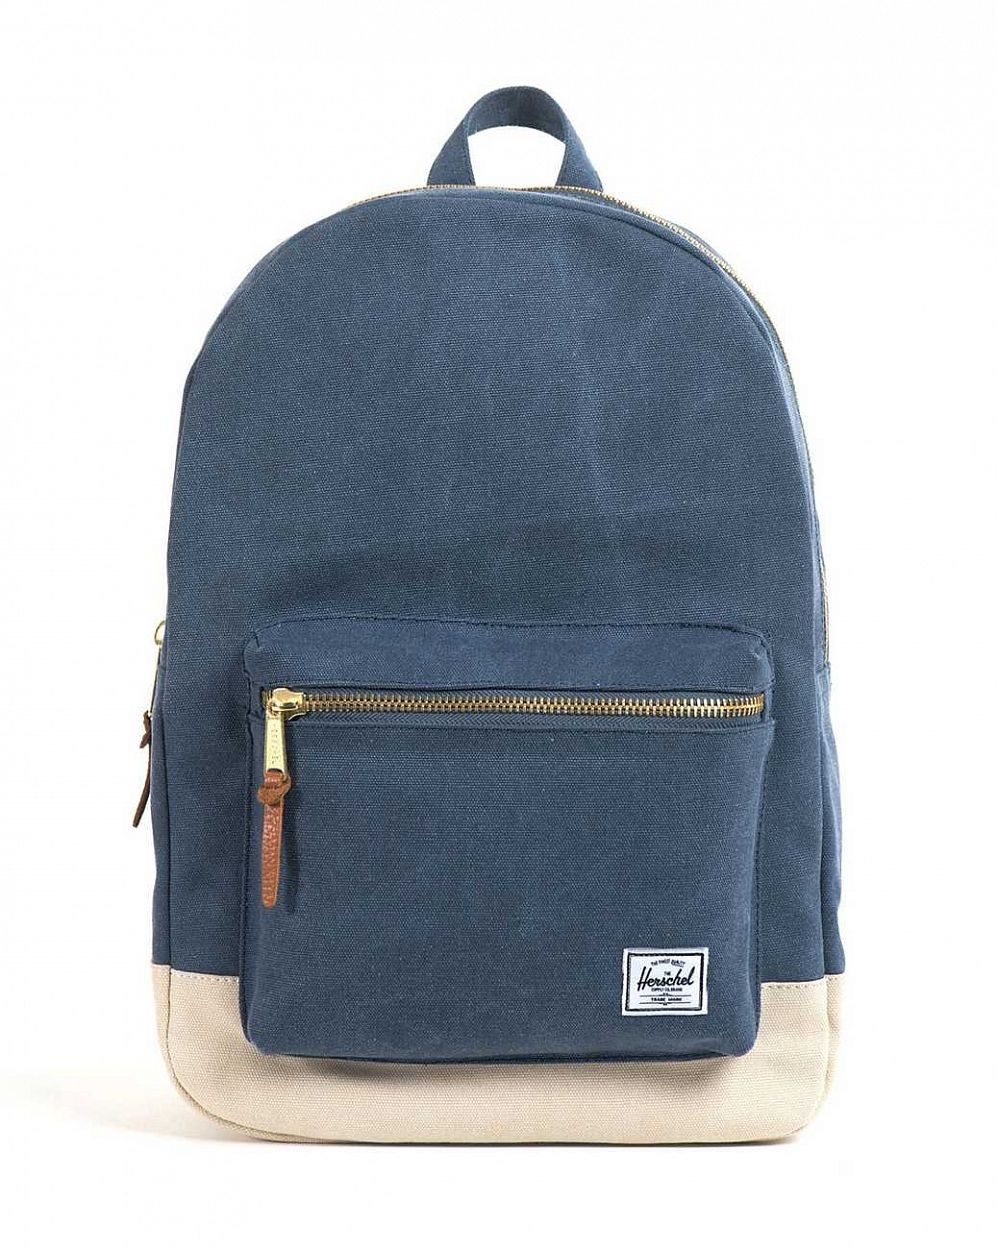 купить Рюкзак Herschel Settlement Canvas Washed Navy Natural в Москве